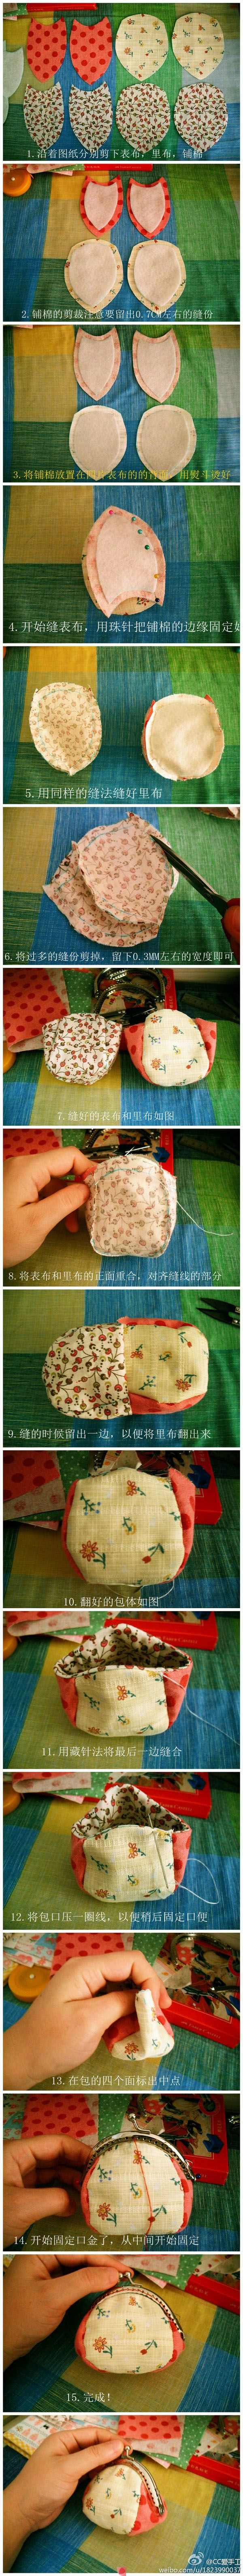 DIY How to sew a Clutch Purse with Clasp TUTORIAL  Monederos con boquilla